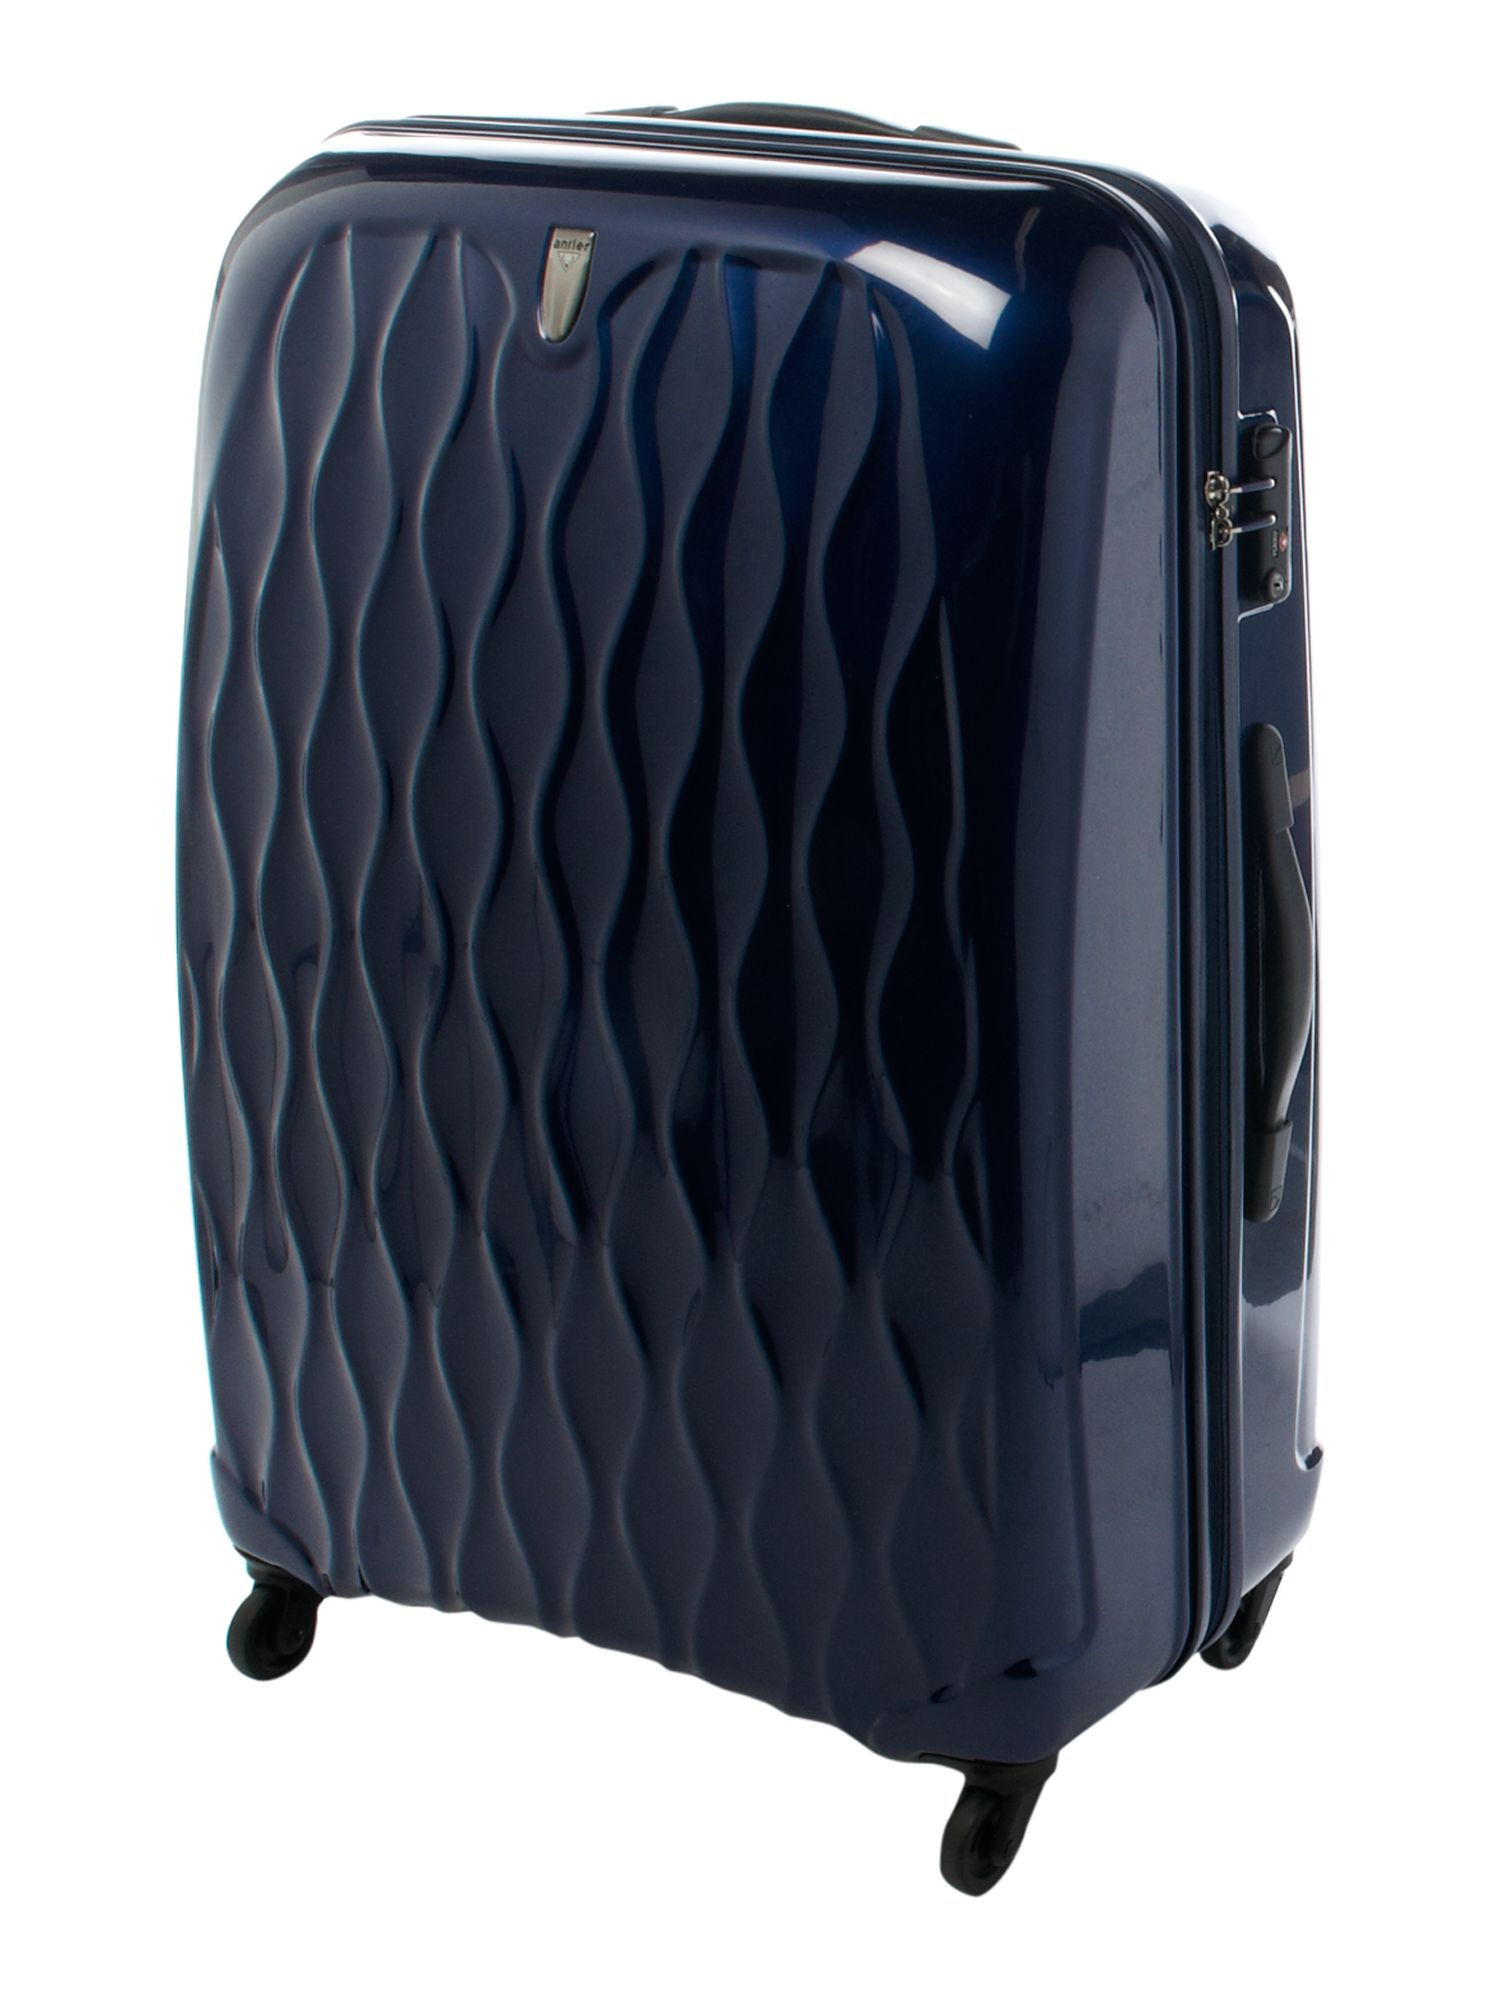 Liquis Navy 81cm 4 Wheel Case